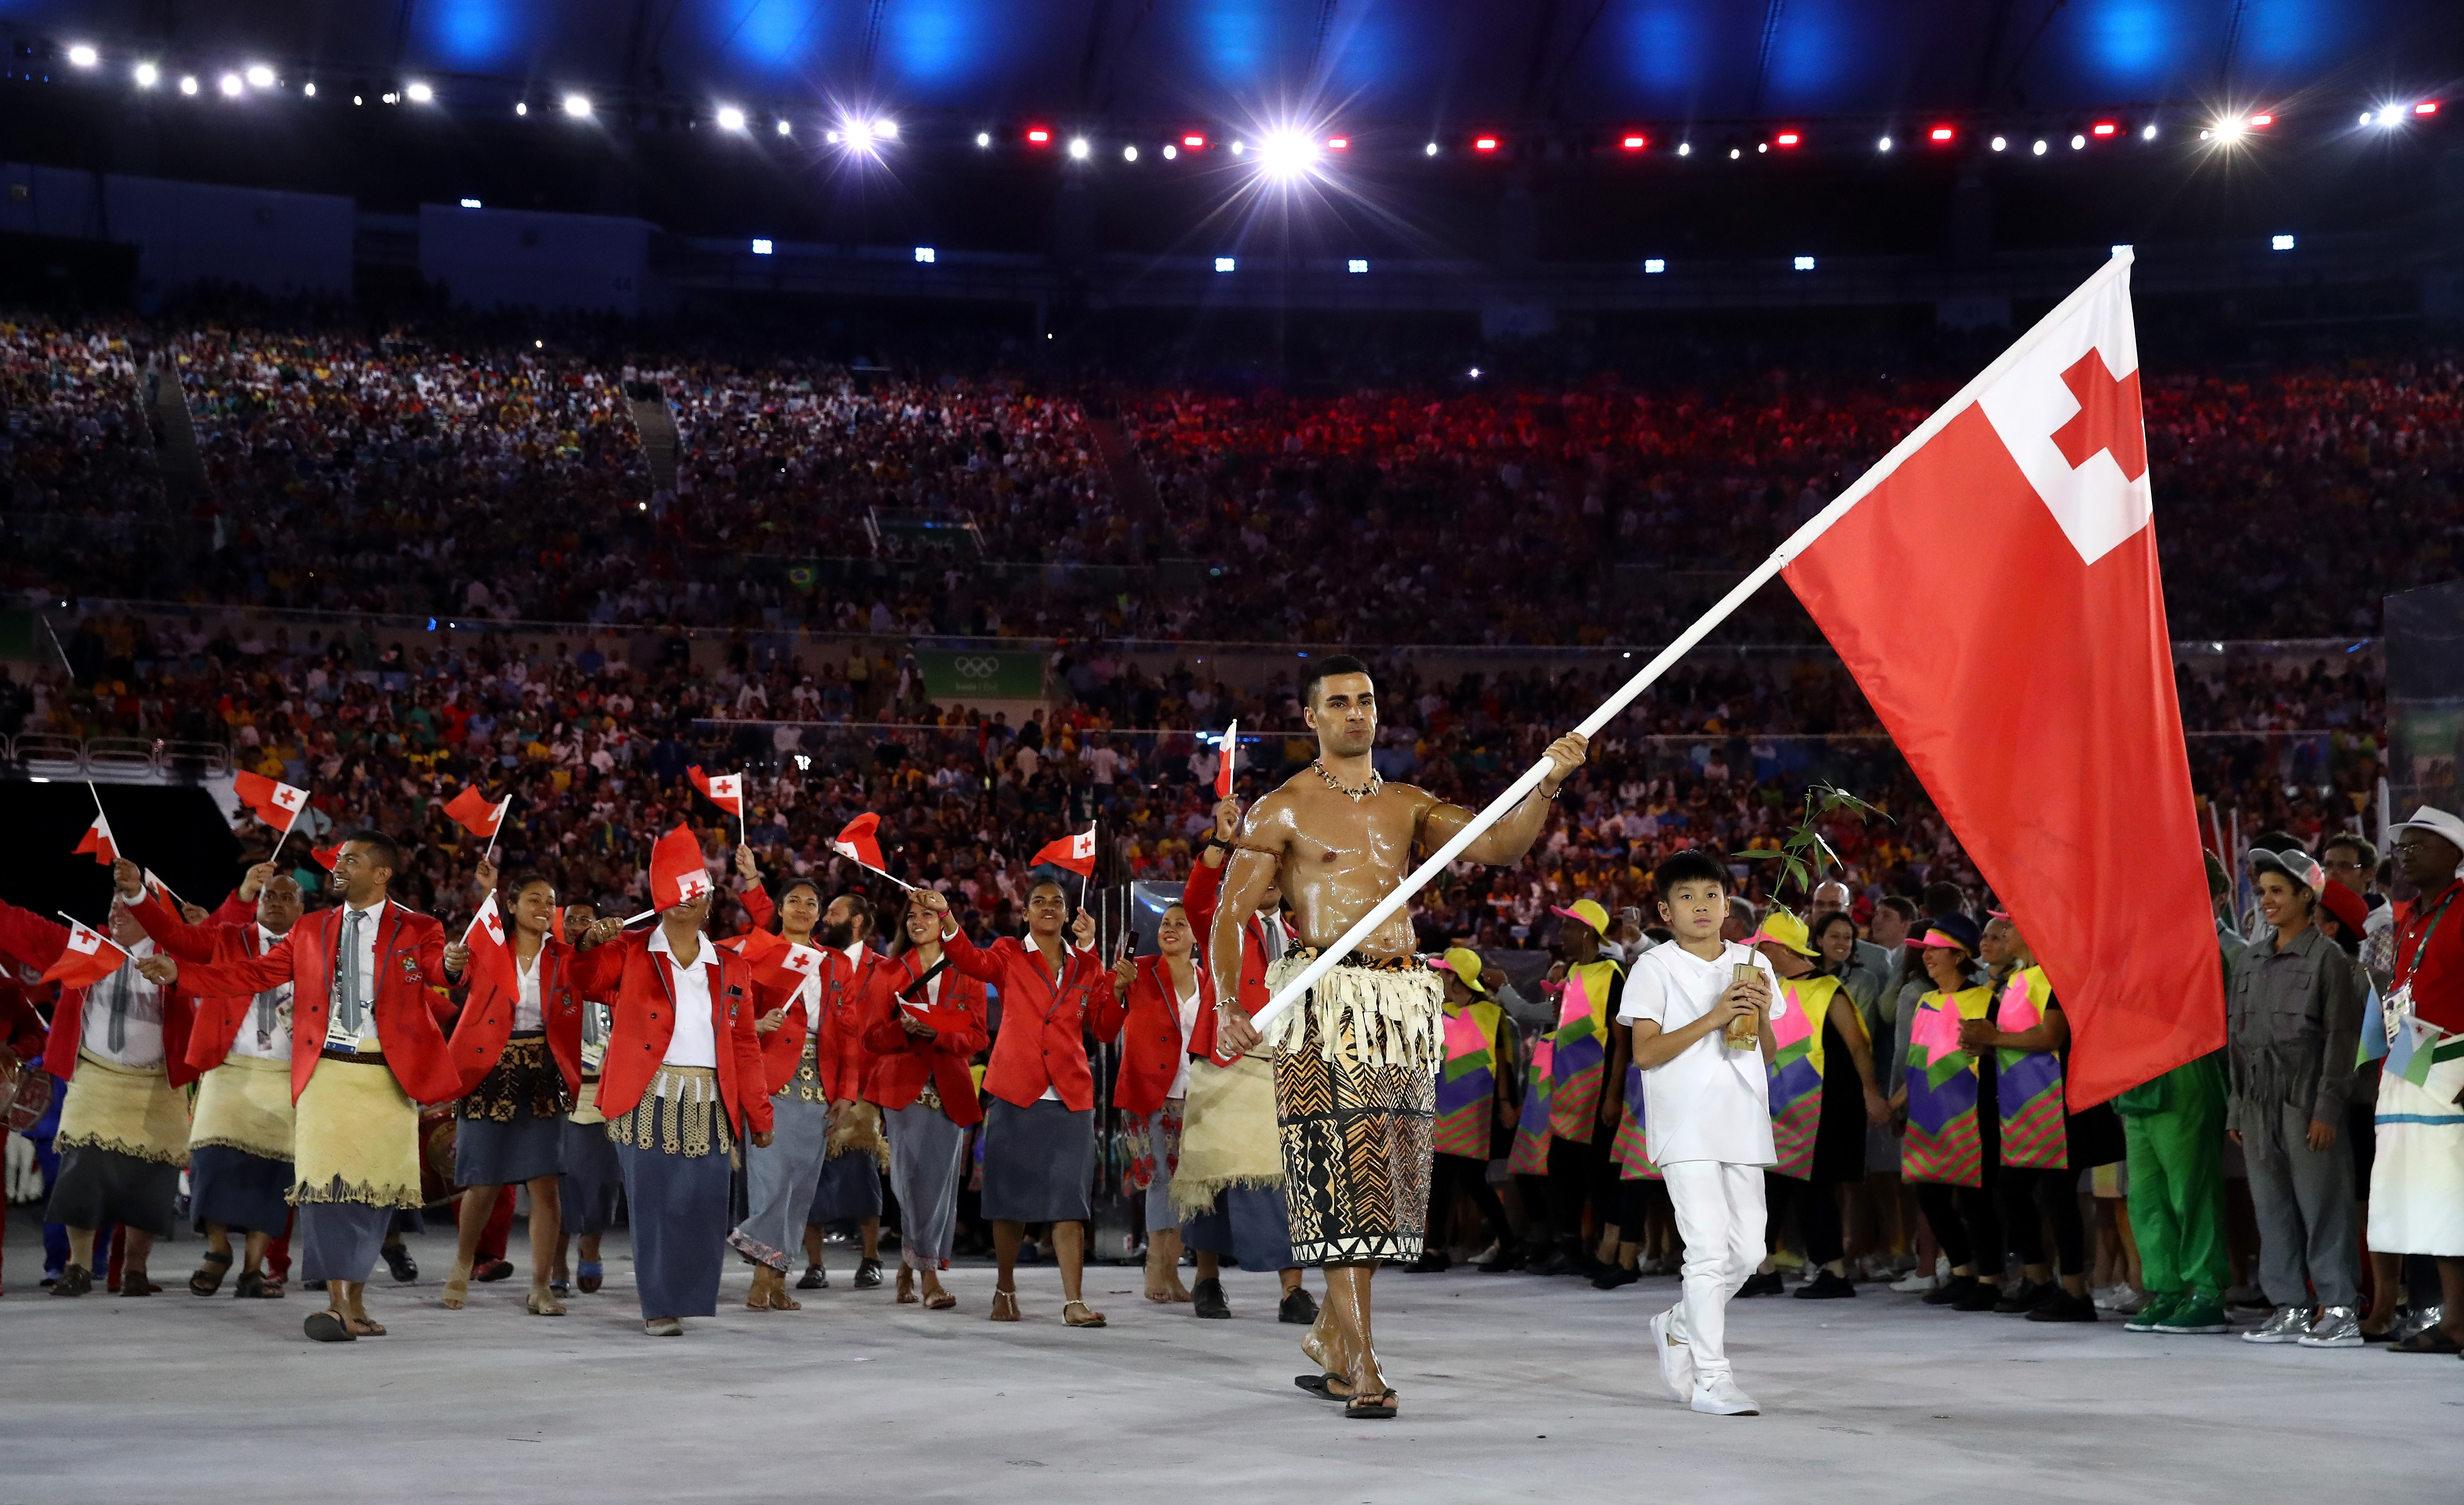 Pita Taufatofua of Tonga carries the flag during the Opening Ceremony of the Rio 2016 Olympic Games.